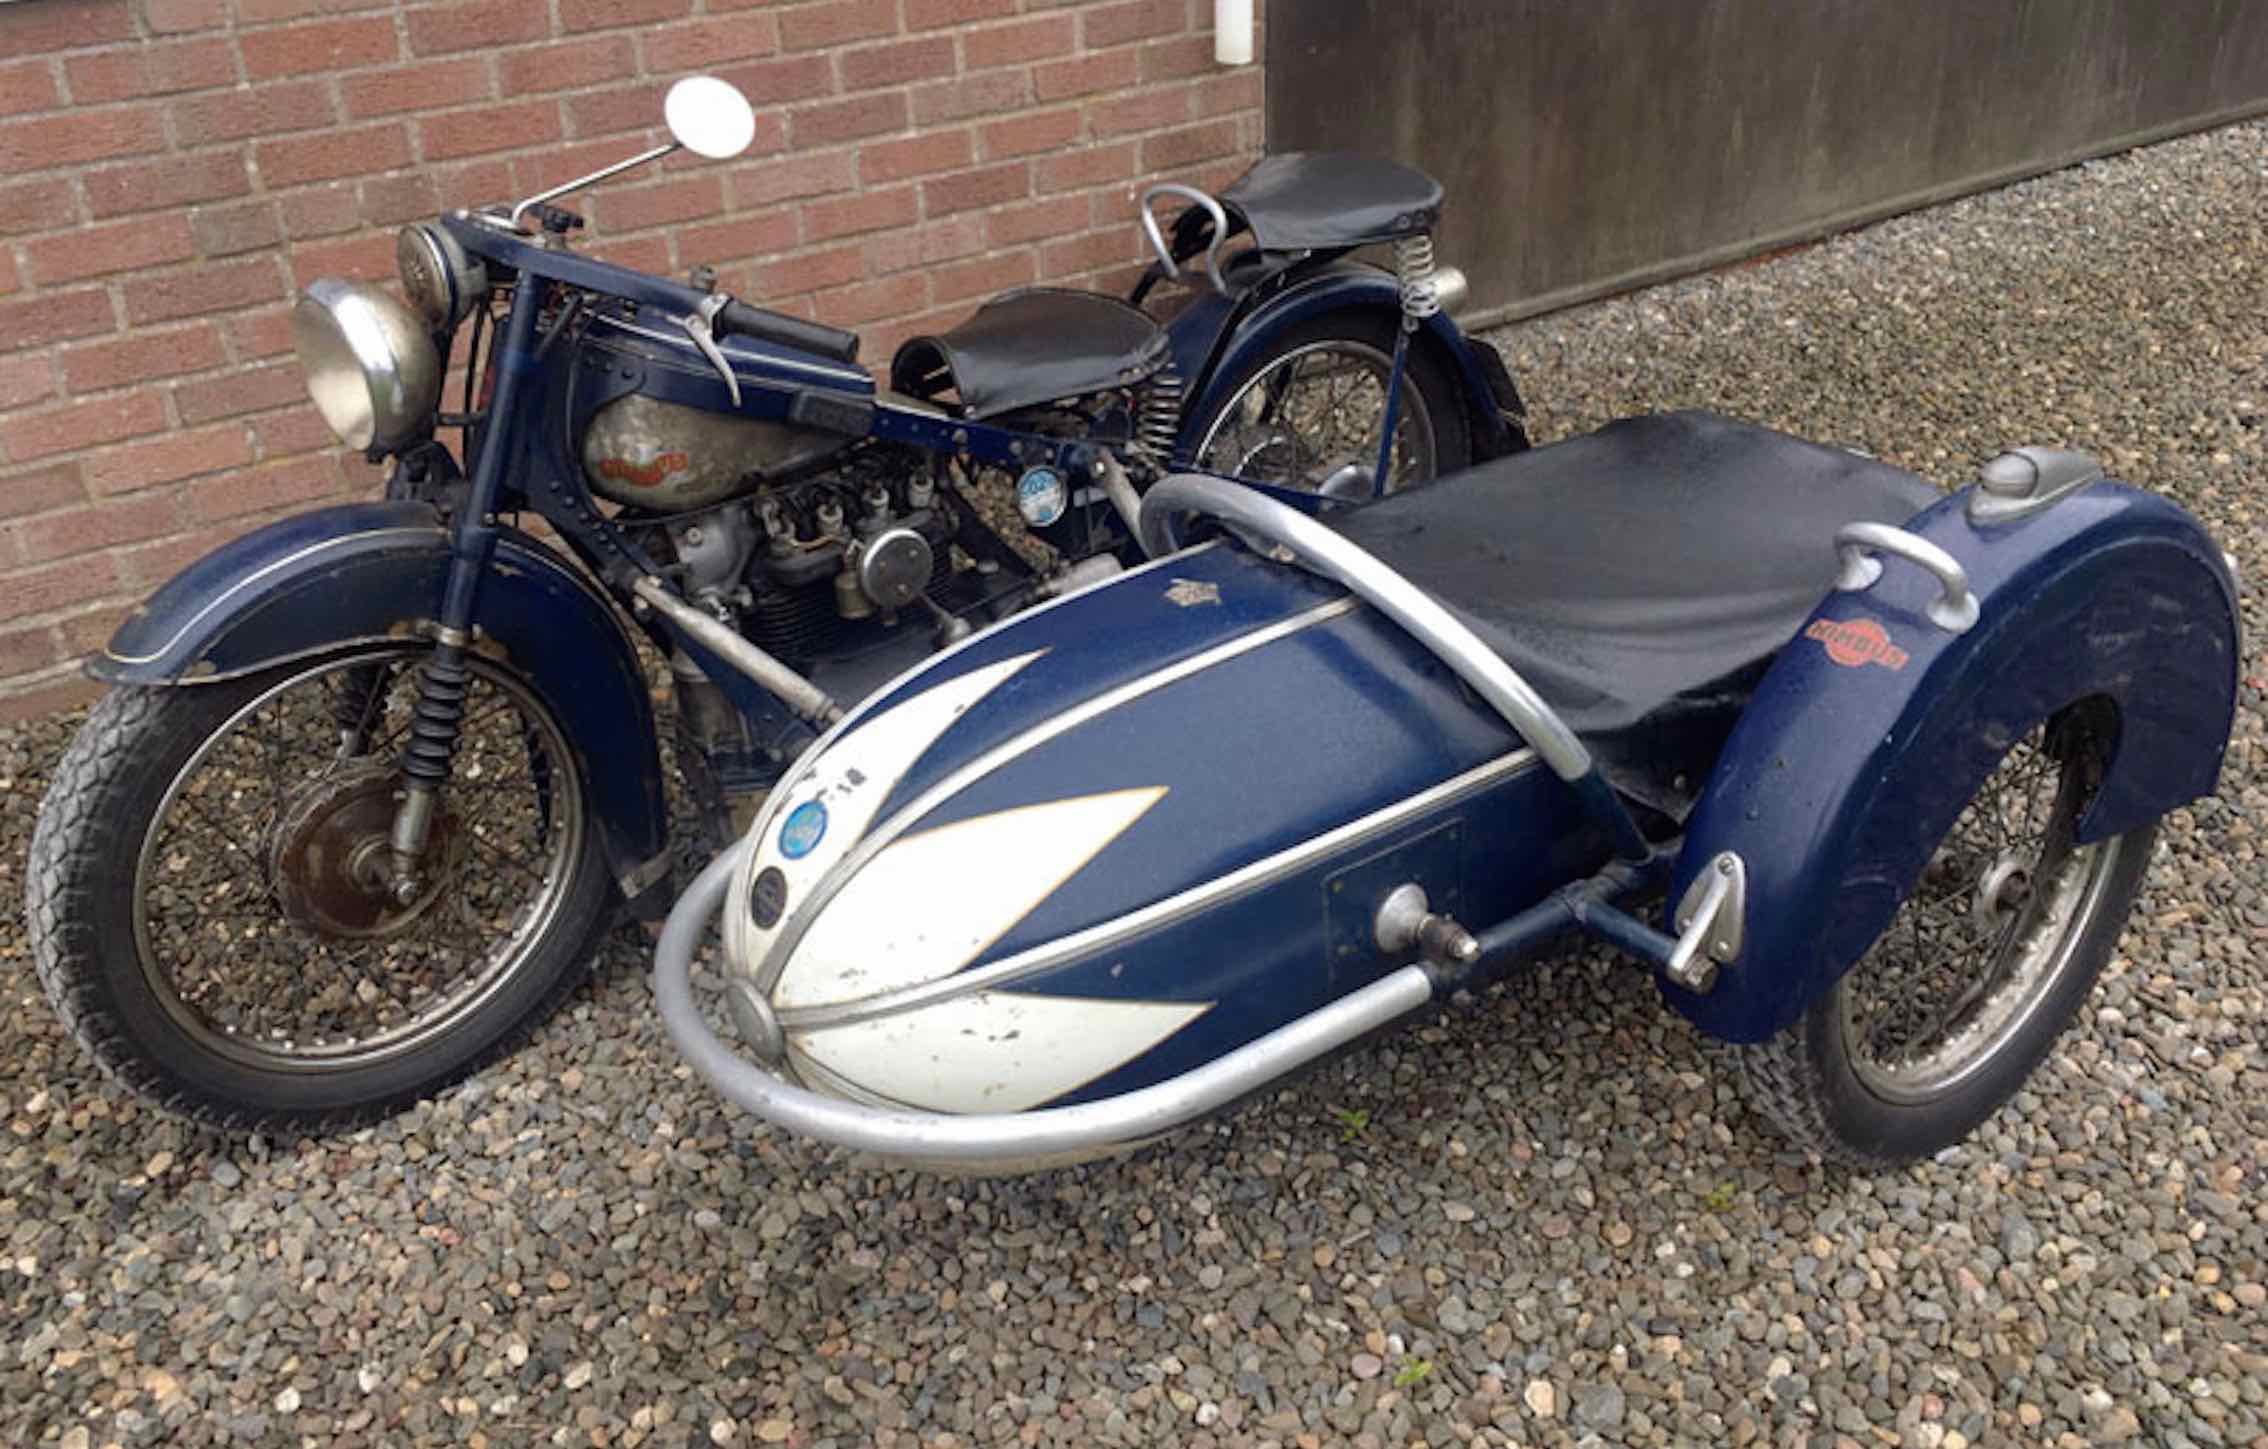 , Shropshire Lad's motorcycles, sidecars headed to auction, ClassicCars.com Journal